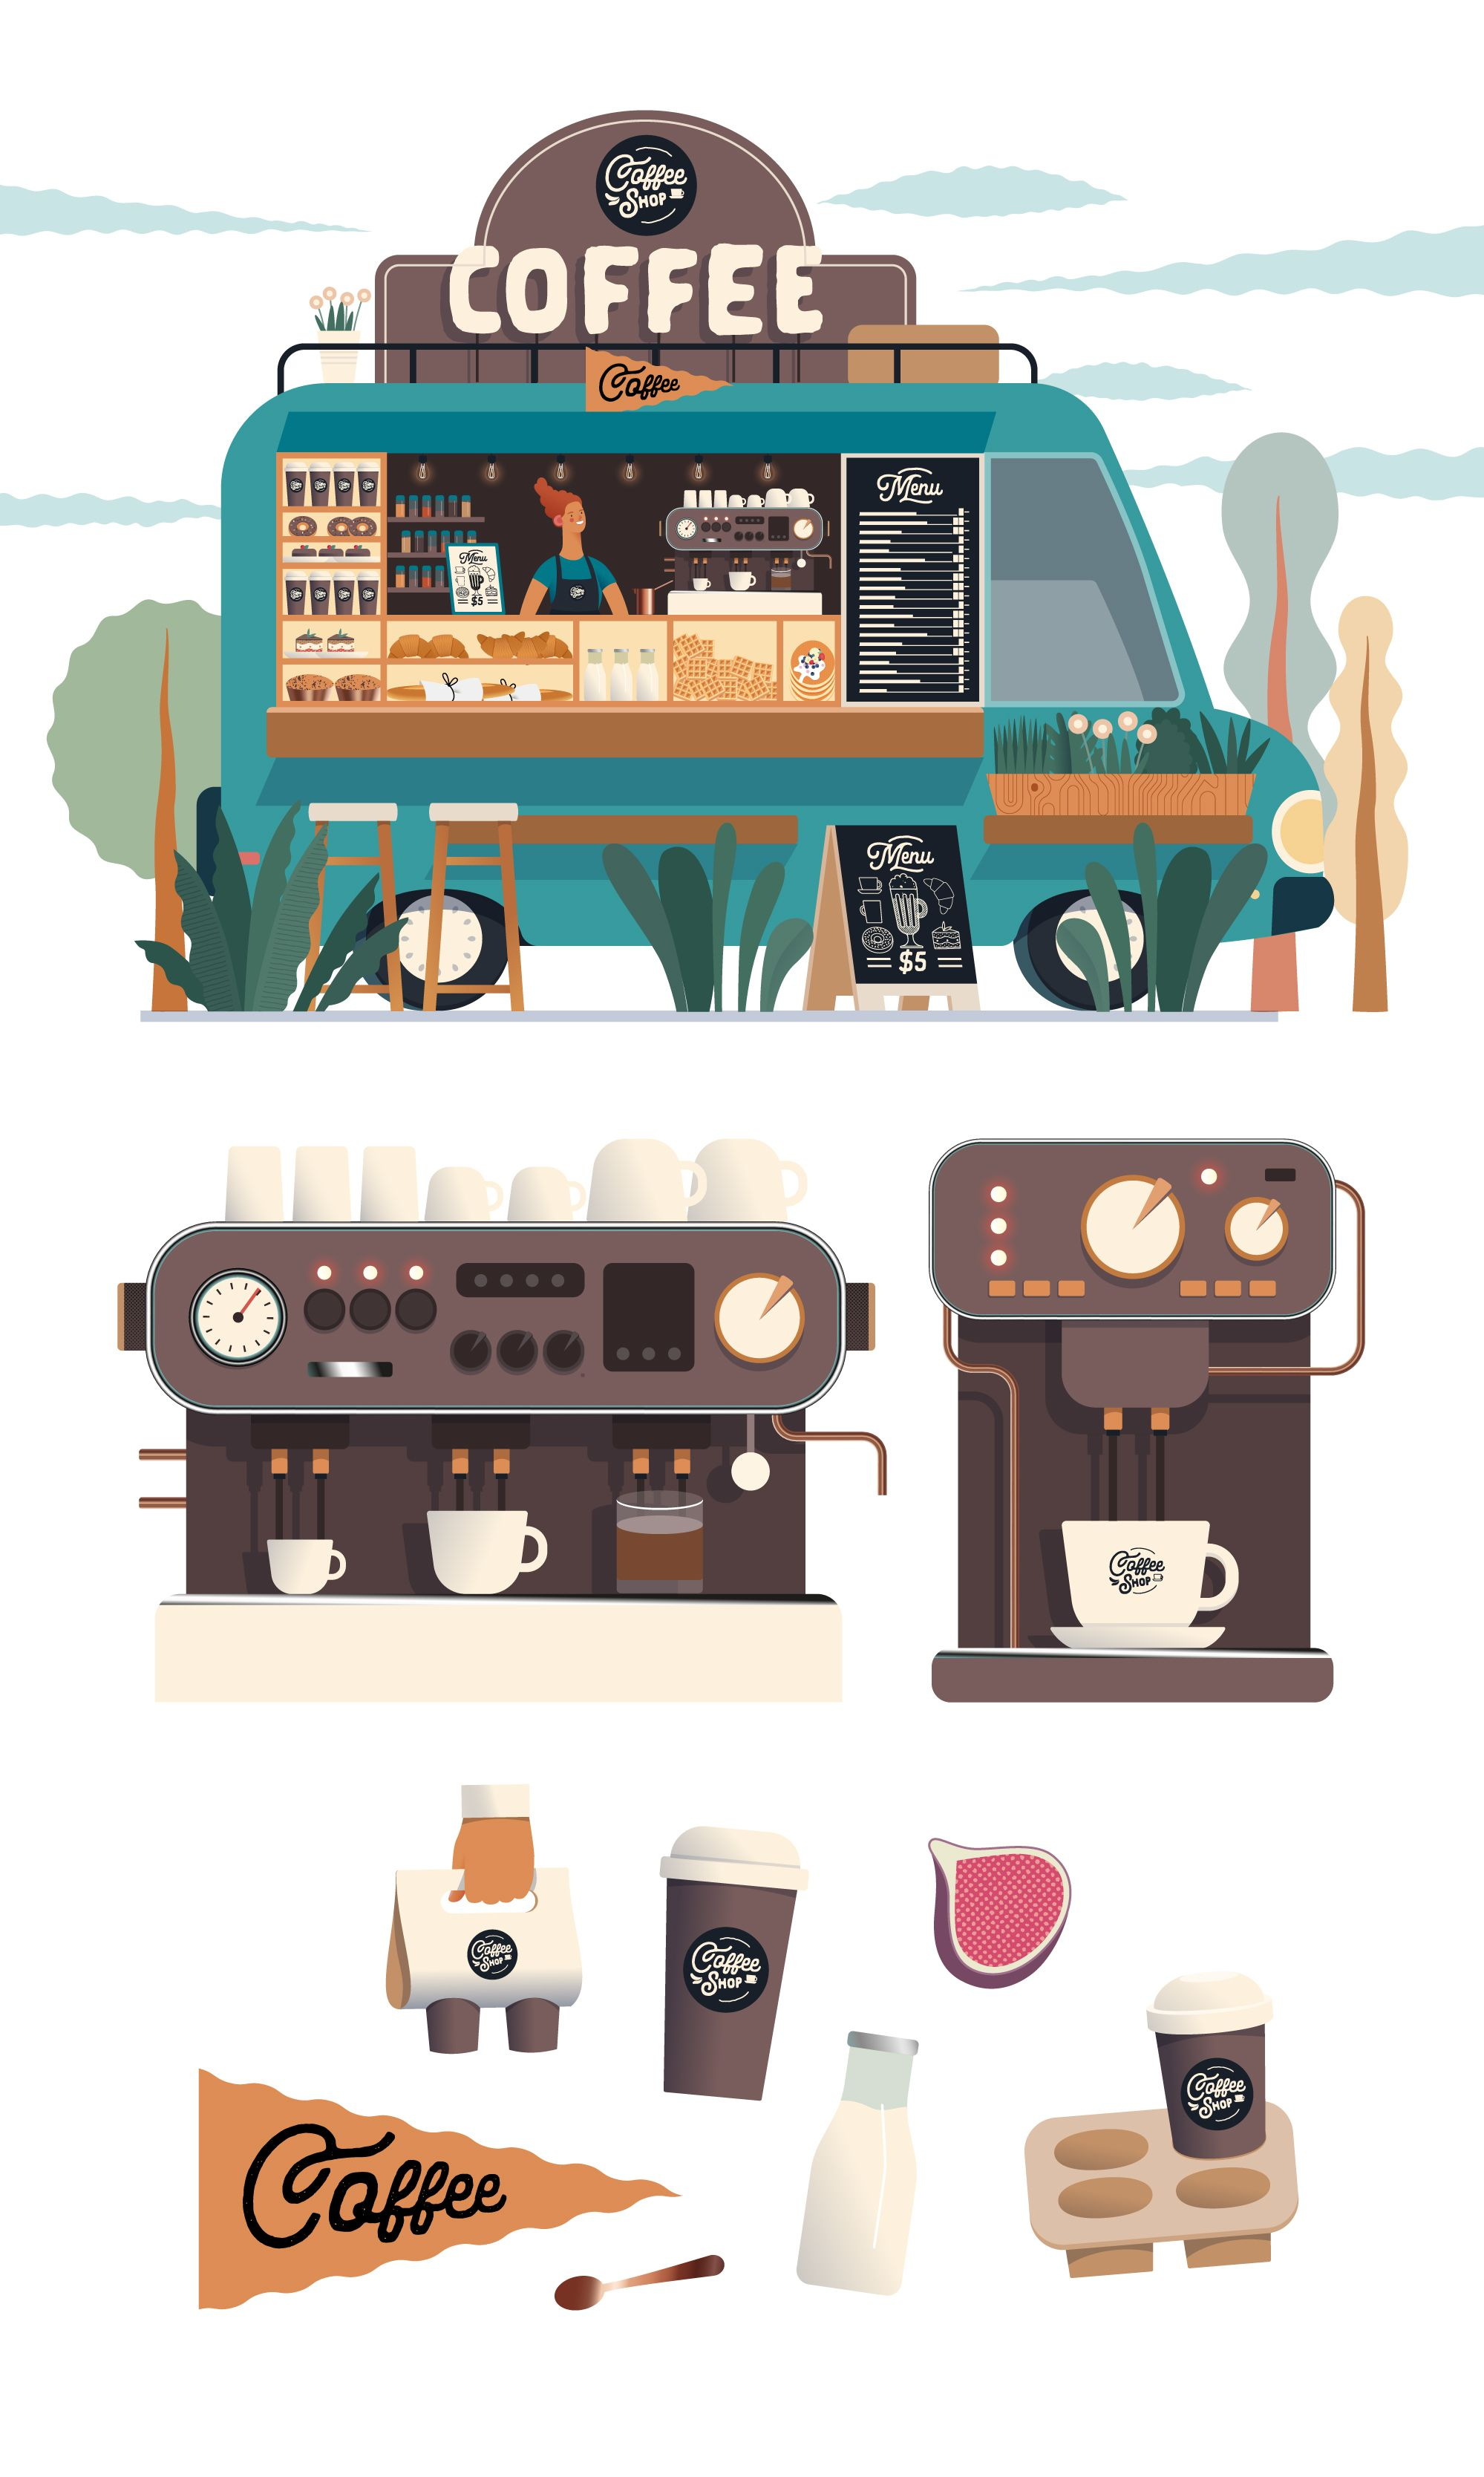 Small business - Coffee shop | Stock Photo and Image Collection by Grinbox | Shutterstock